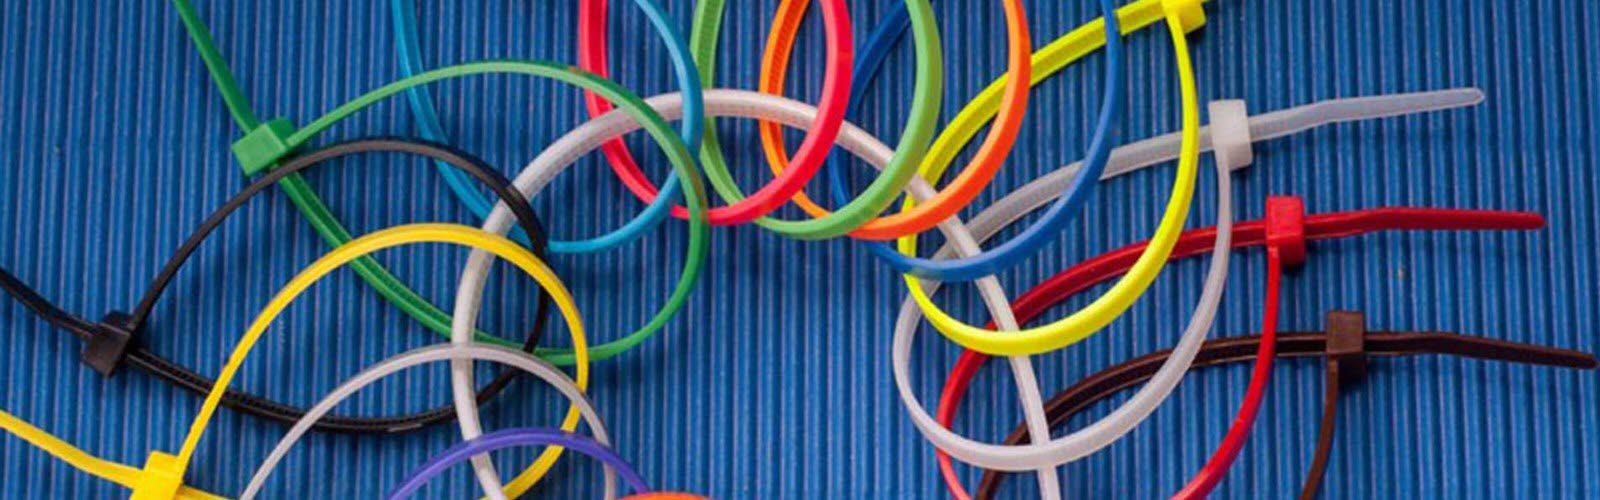 Colored Zip Ties on Natural Cable Tie